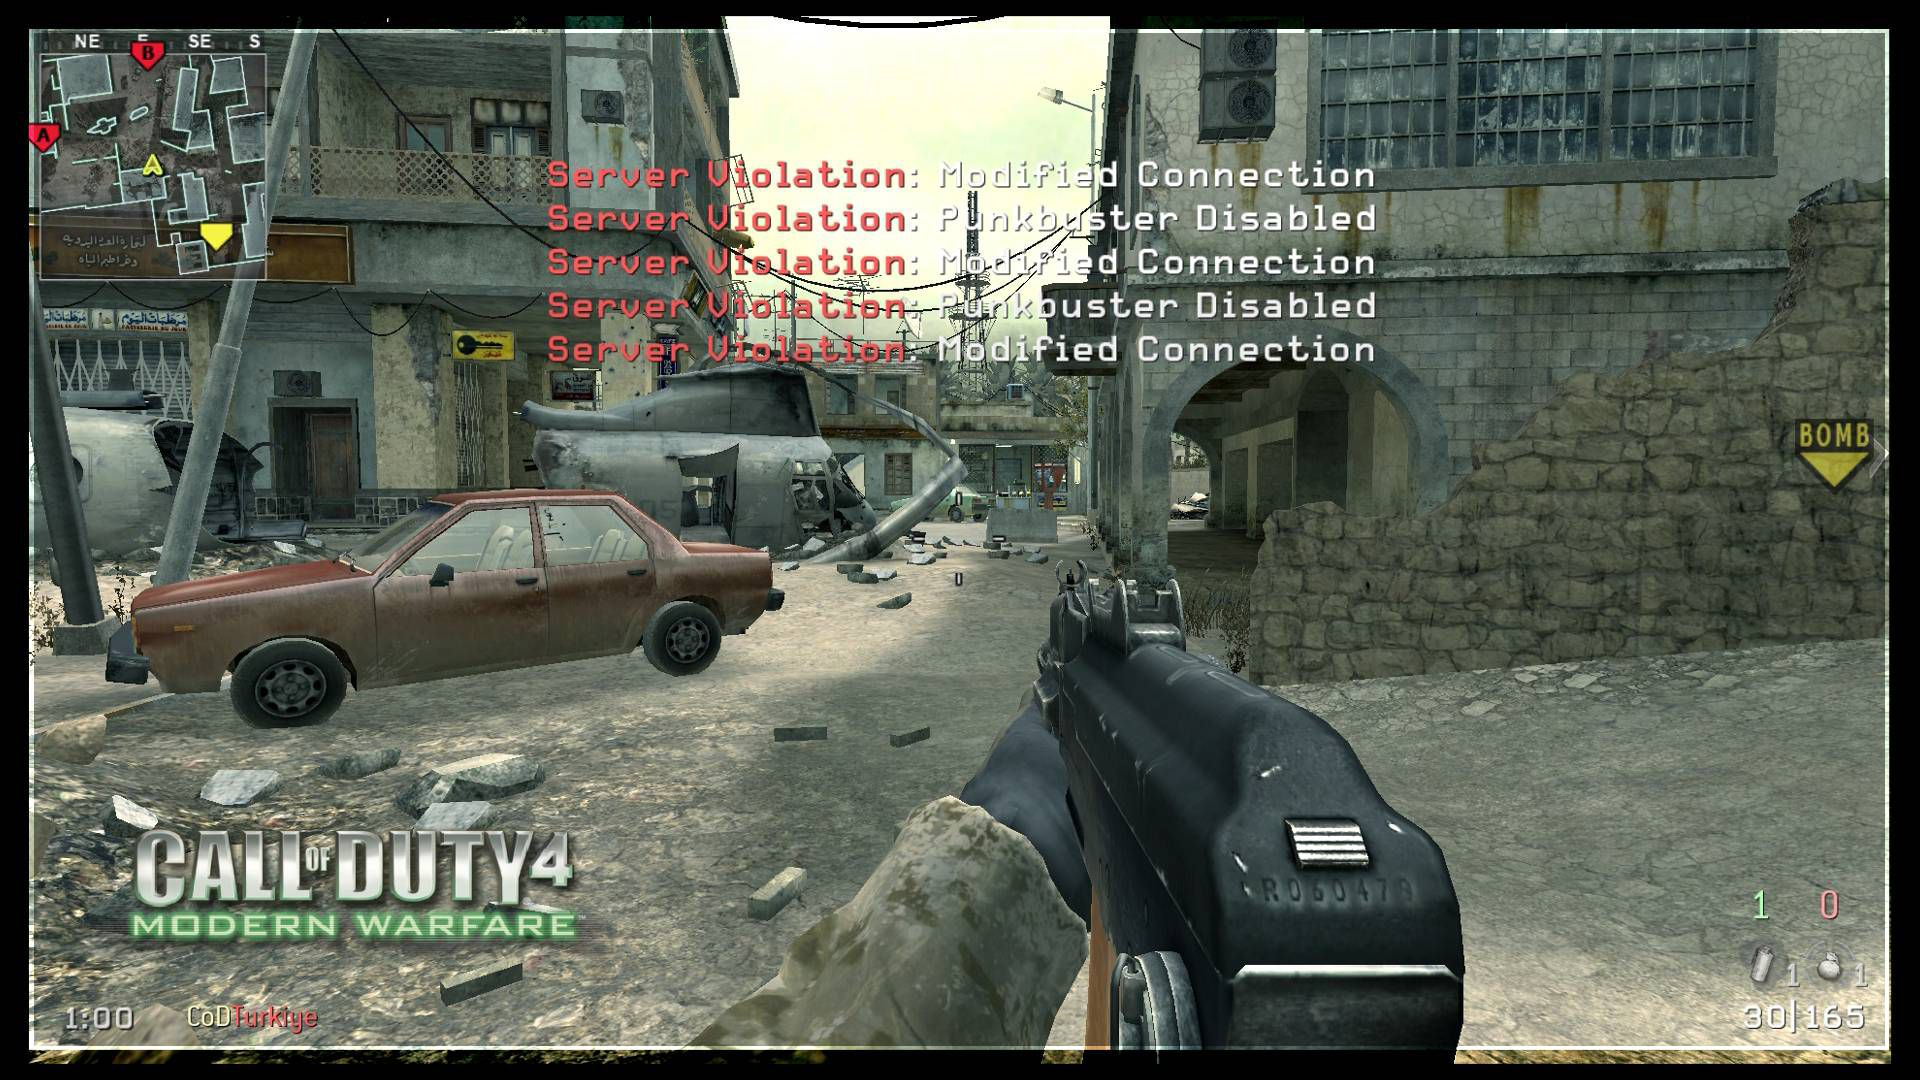 Call of Duty 4 Promod Server Vialation Punkbuster Disabled Modified Connection Error